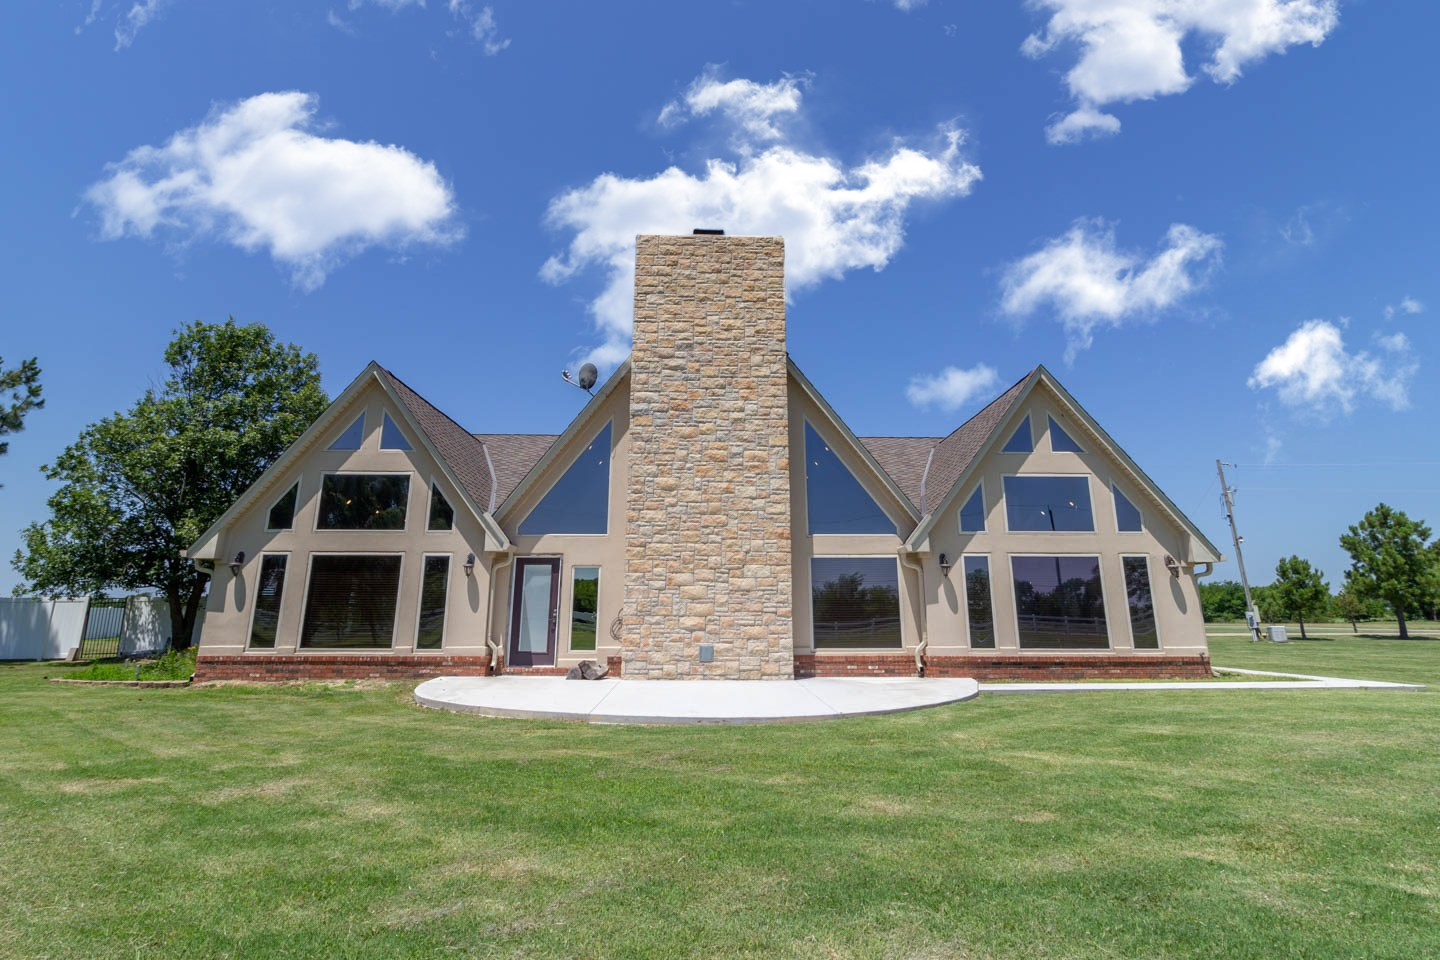 Stunning Dream Home on 11.36 acres in Pryor, OK